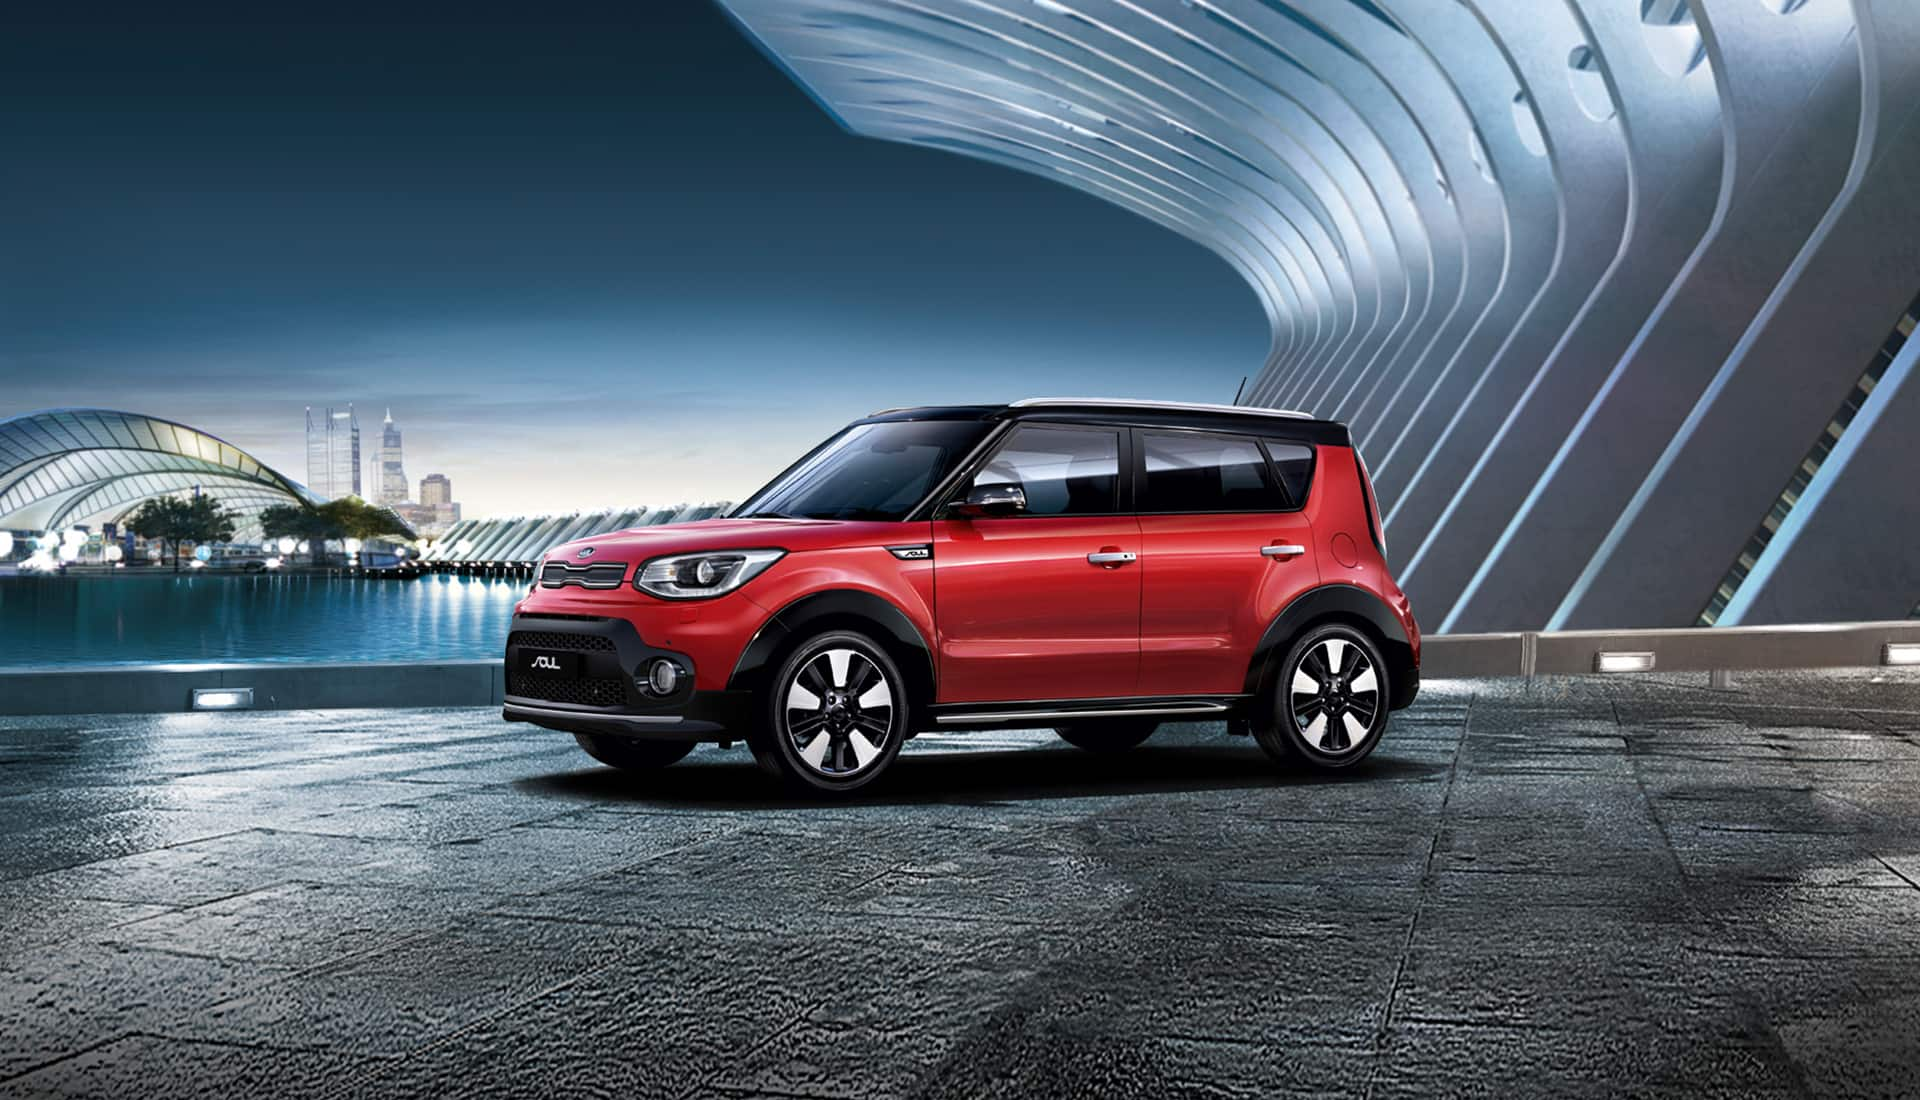 Le crossover urbain Kia Soul a un design unique